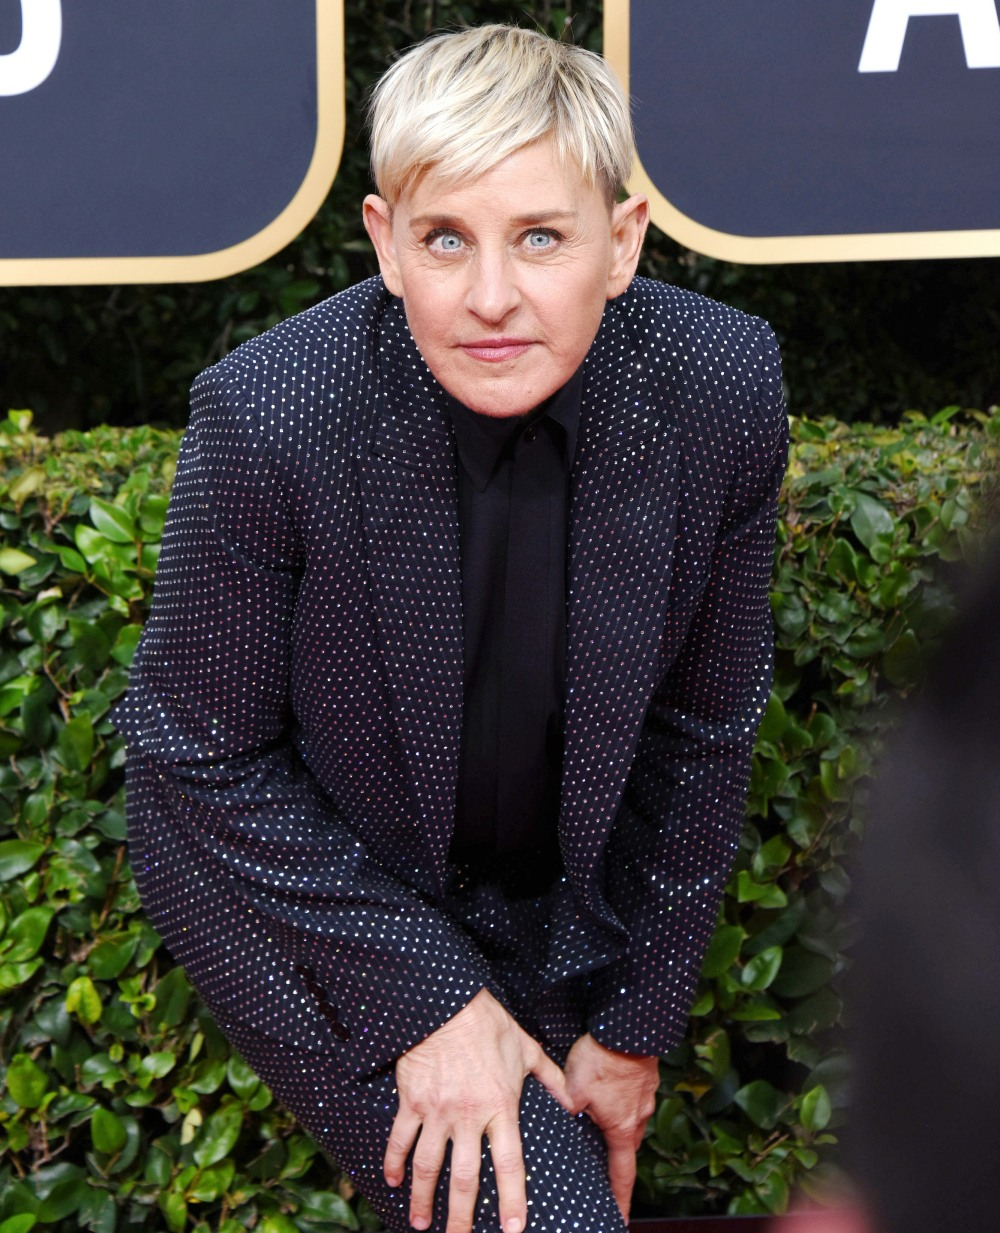 Ellen Degeneres attends the 77th Annual Golden Globe Awards at The Beverly Hilton Hotel on January 05, 2020 in Beverly Hills, California © Jill Johnson/jpistudios.com